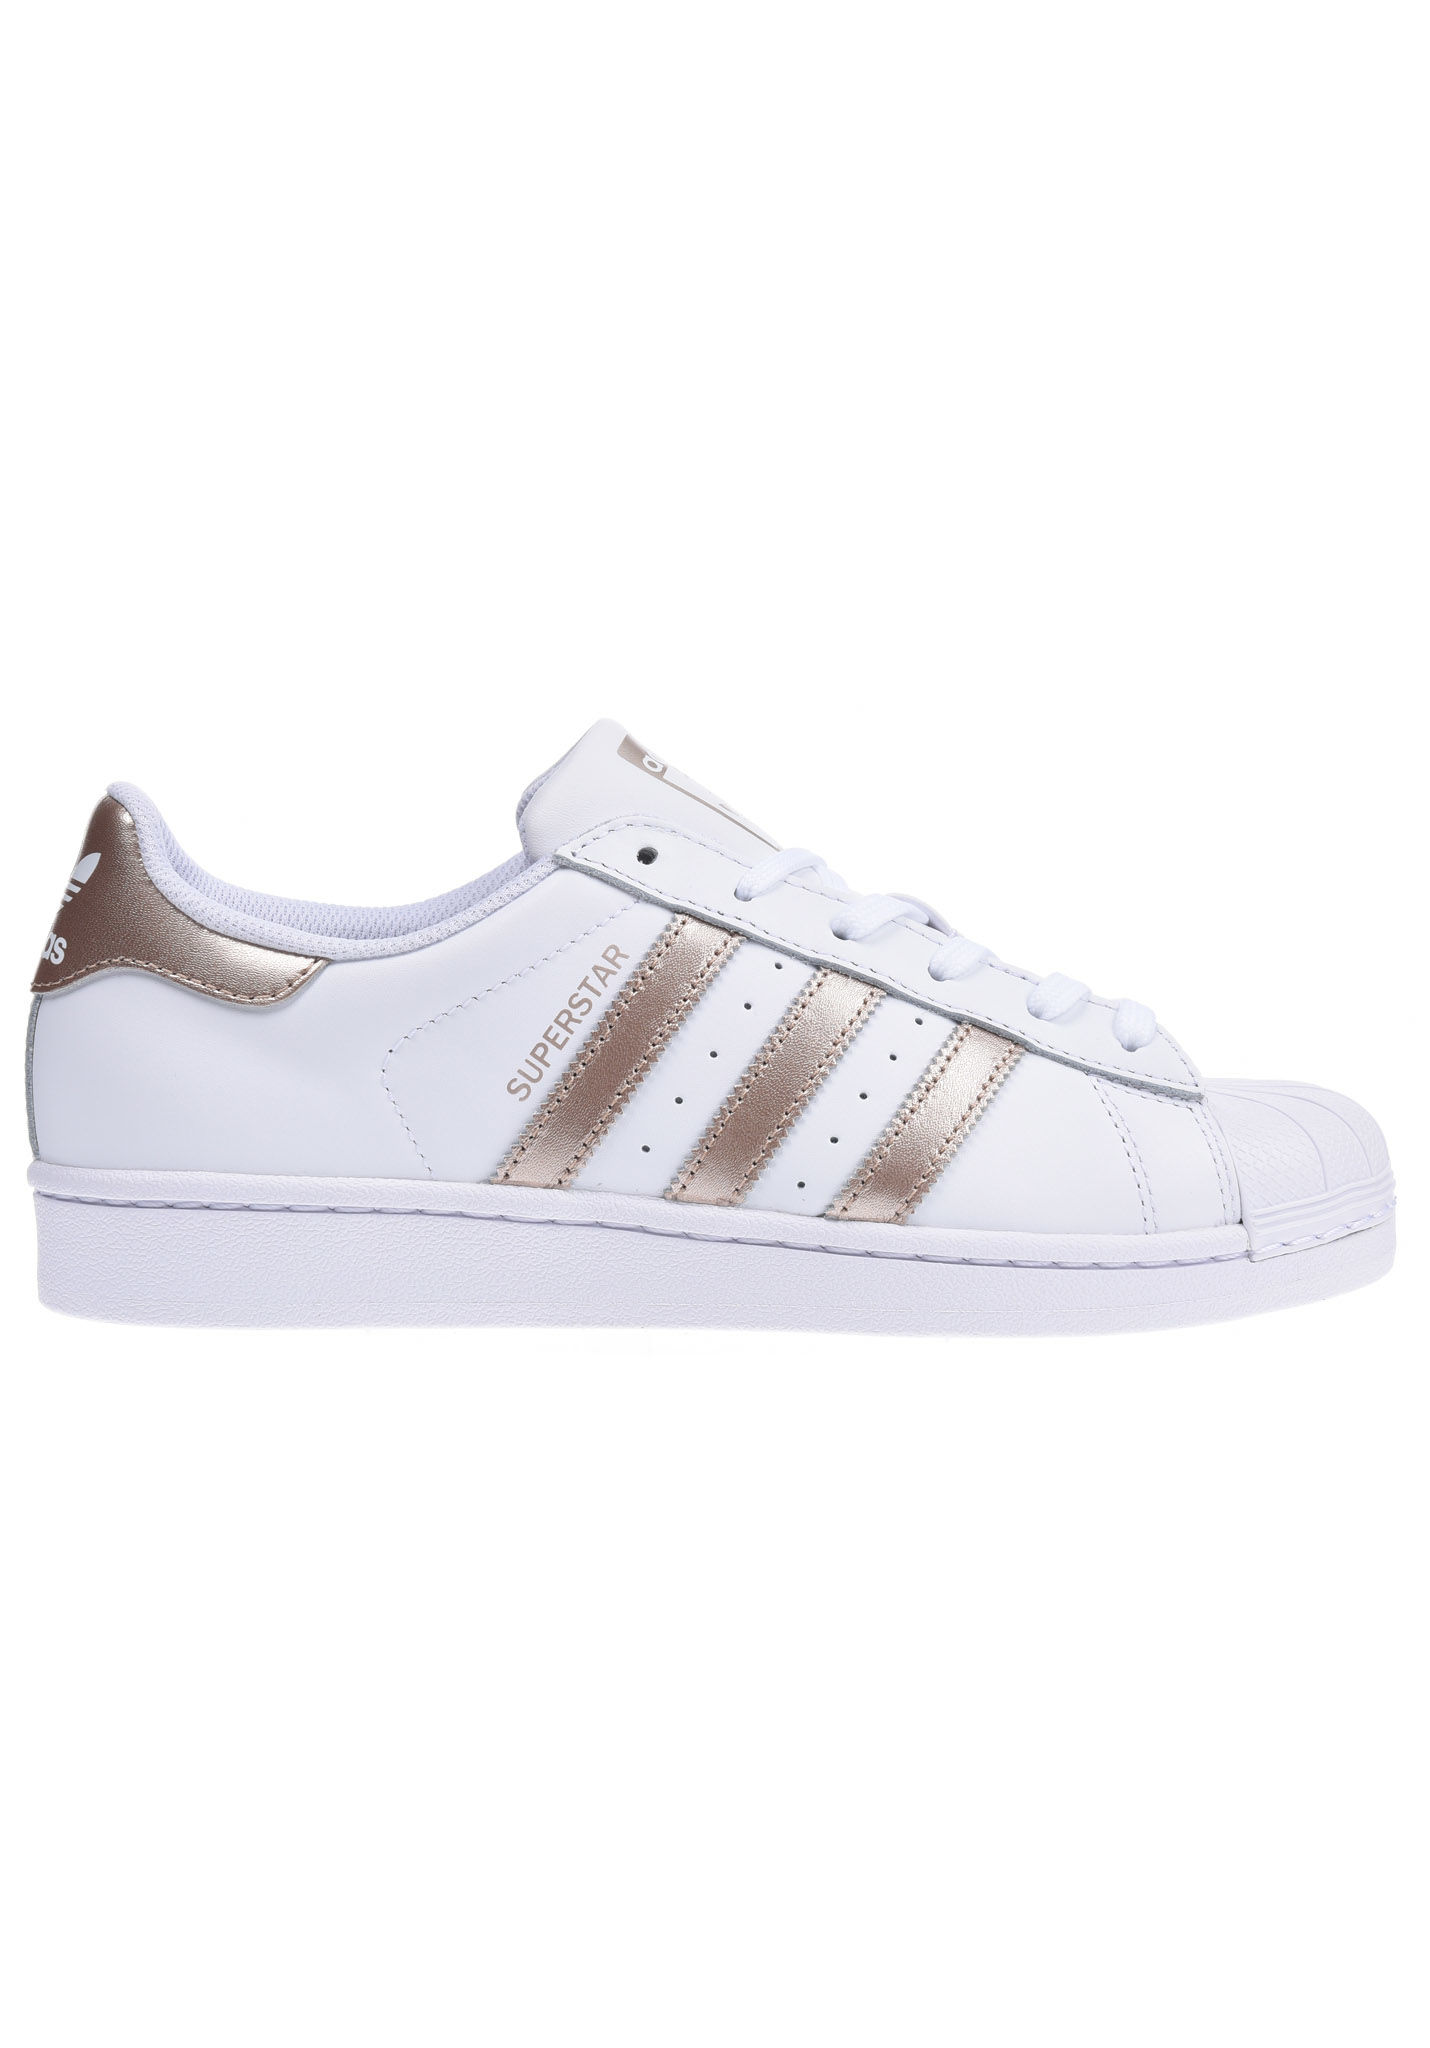 adidas Originals Superstar - Sneaker für Damen - Weiß - Planet Sports b9a671e31b